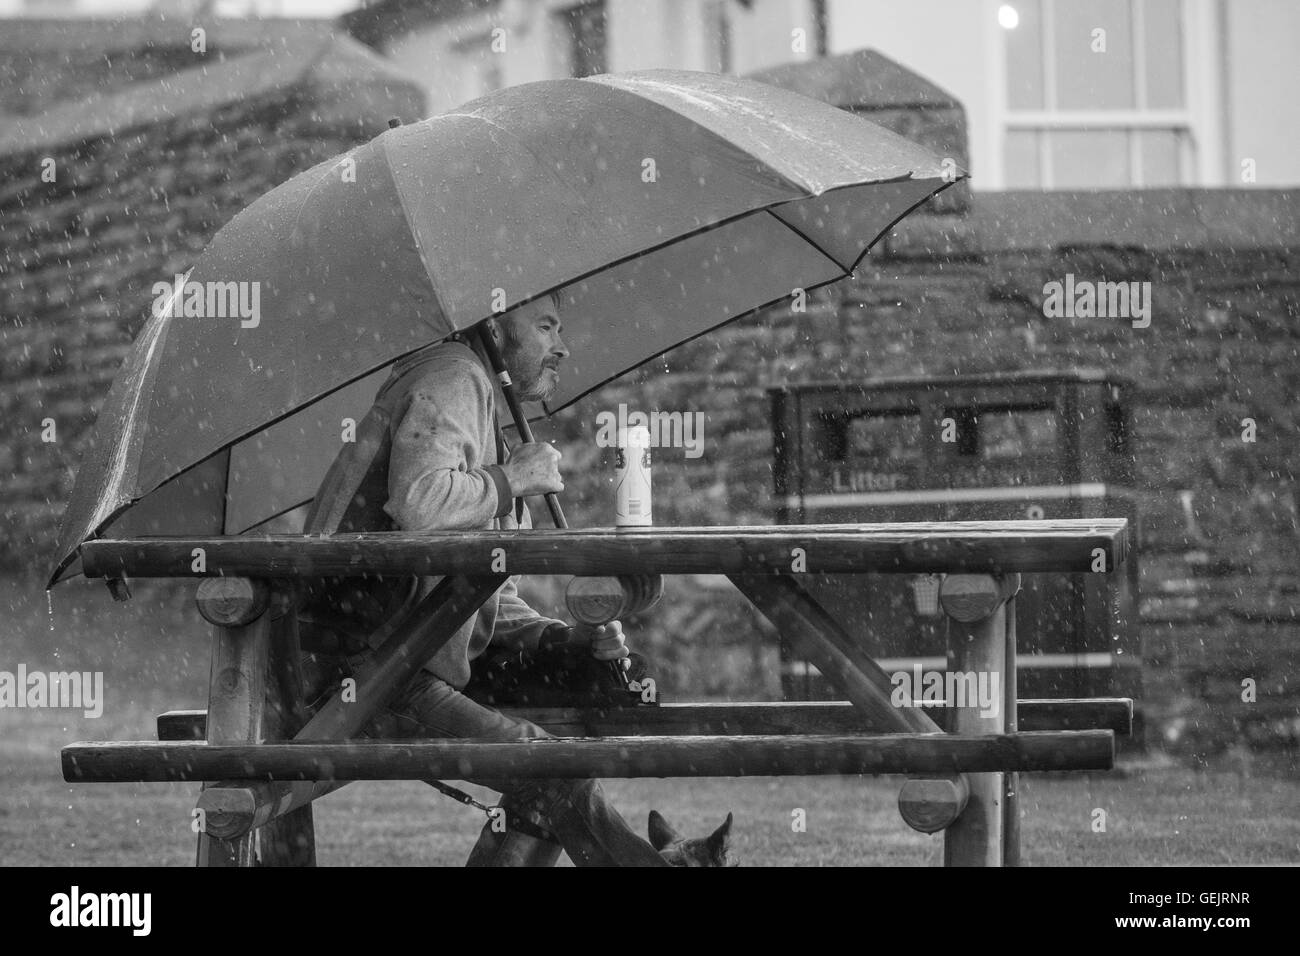 man sitting on a bench under a big umbrella while it is raining heavily - Stock Image